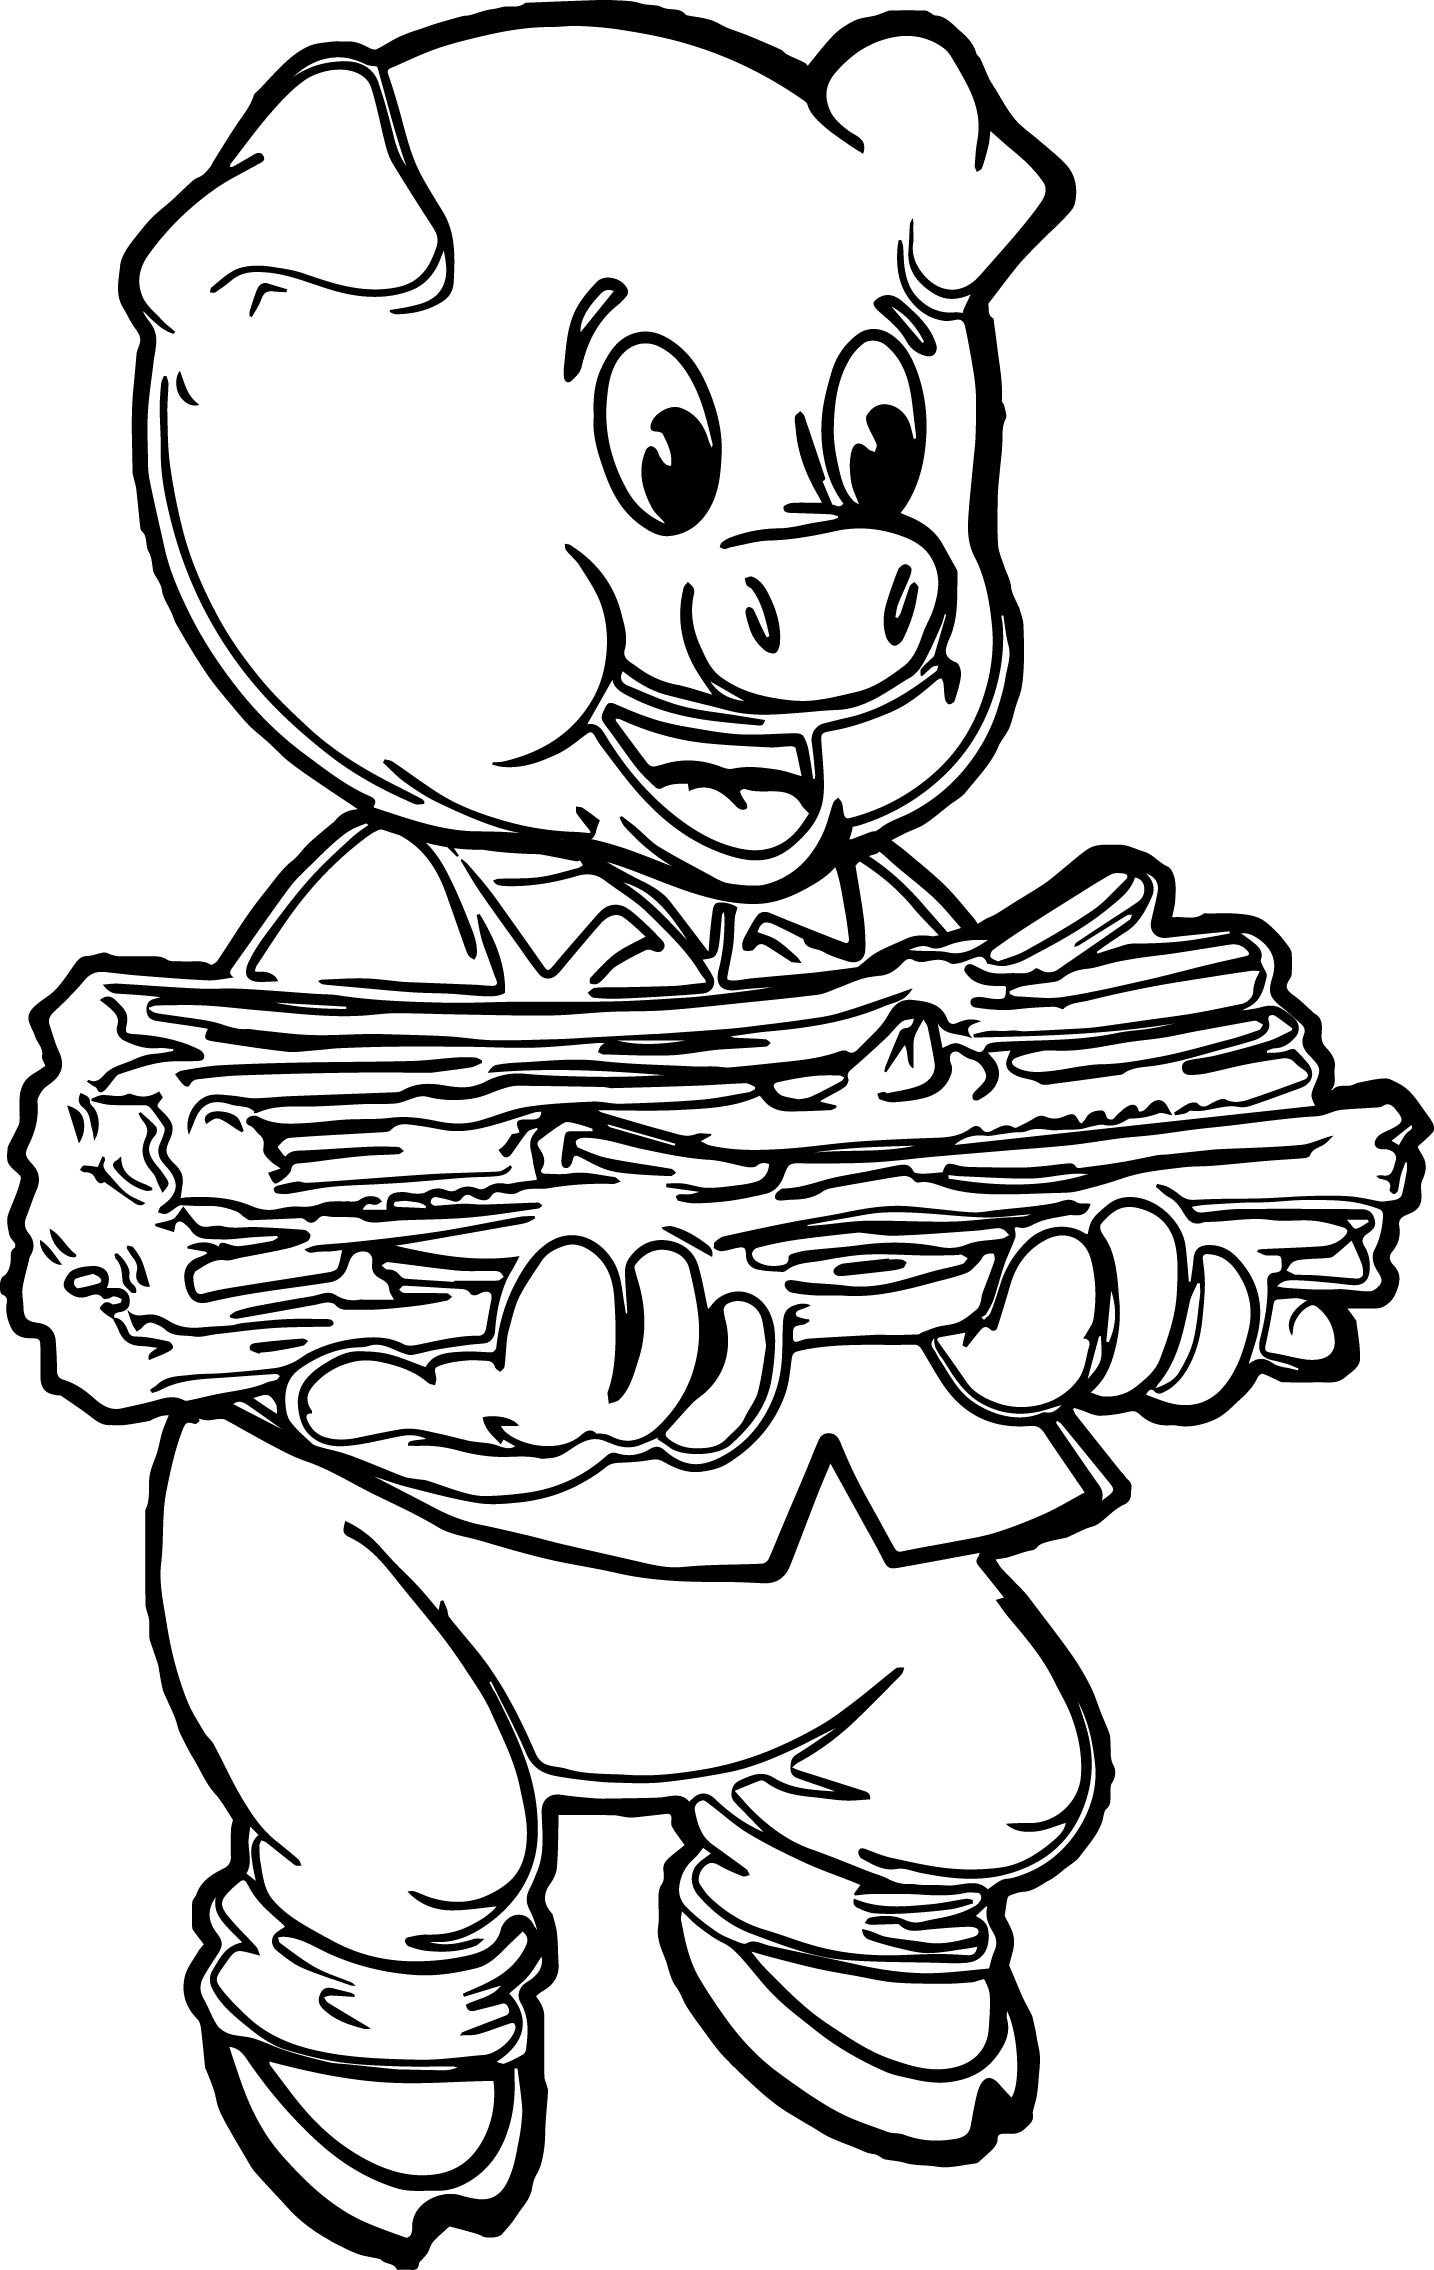 stick pig coloring page wecoloringpage